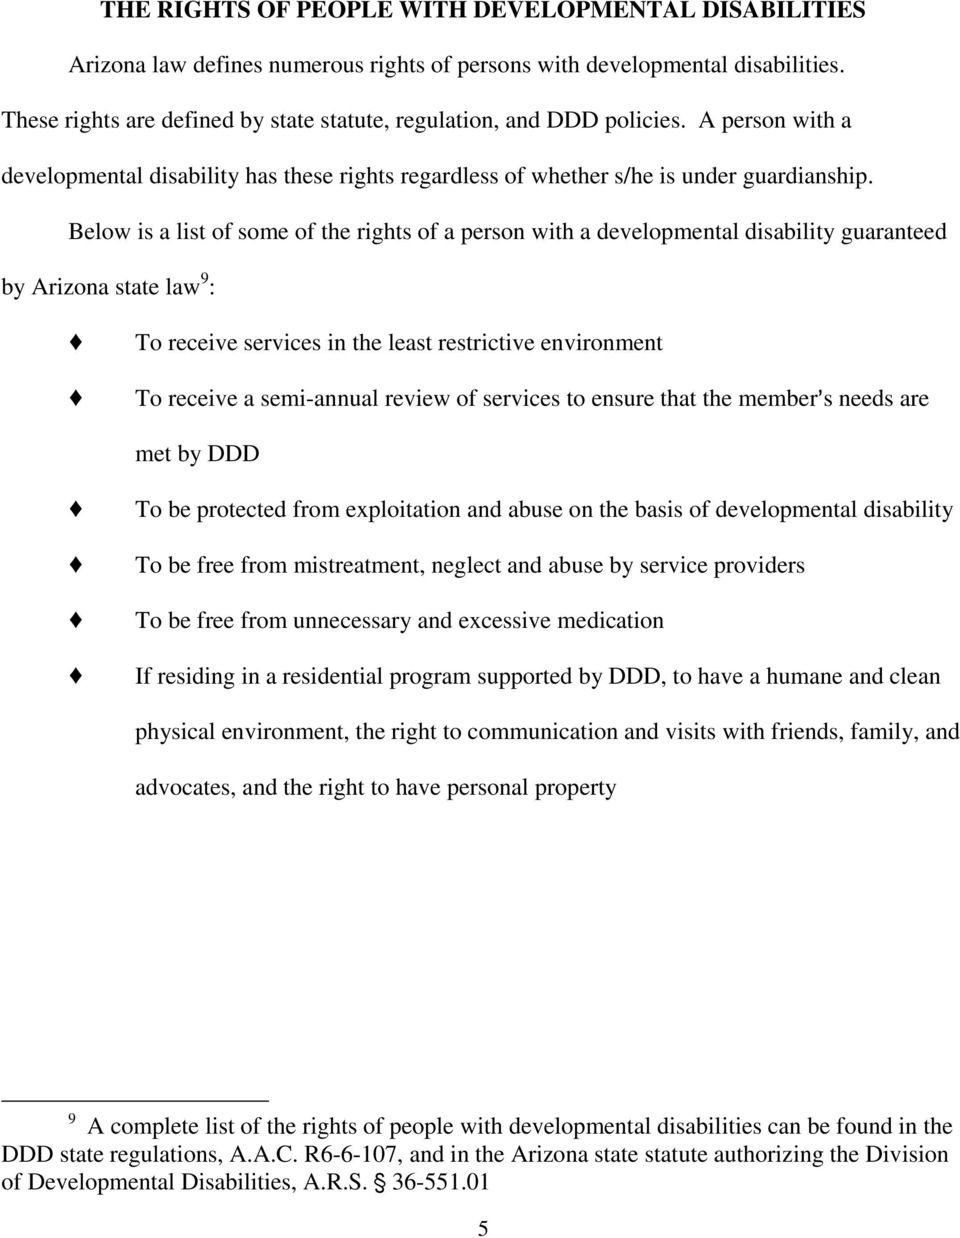 Below is a list of some of the rights of a person with a developmental disability guaranteed by Arizona state law 9 : To receive services in the least restrictive environment To receive a semi-annual